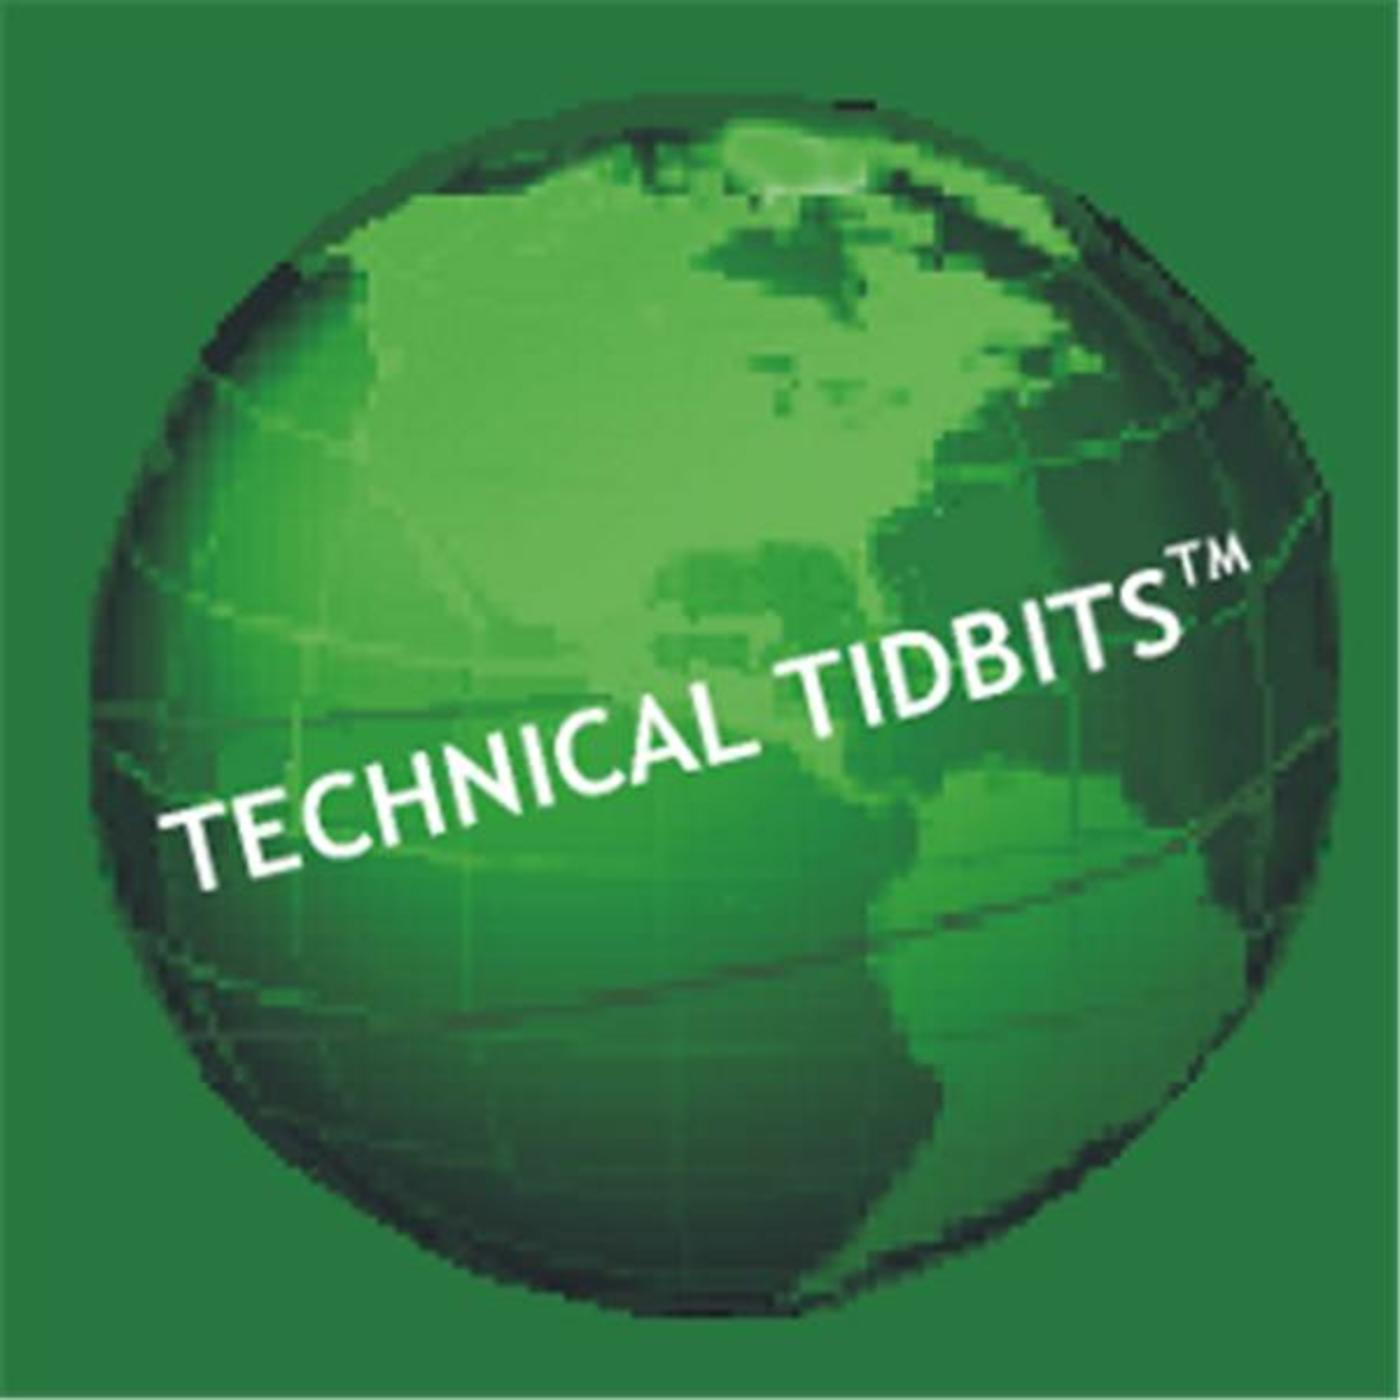 Technical Tidbits with Debbie Mahler